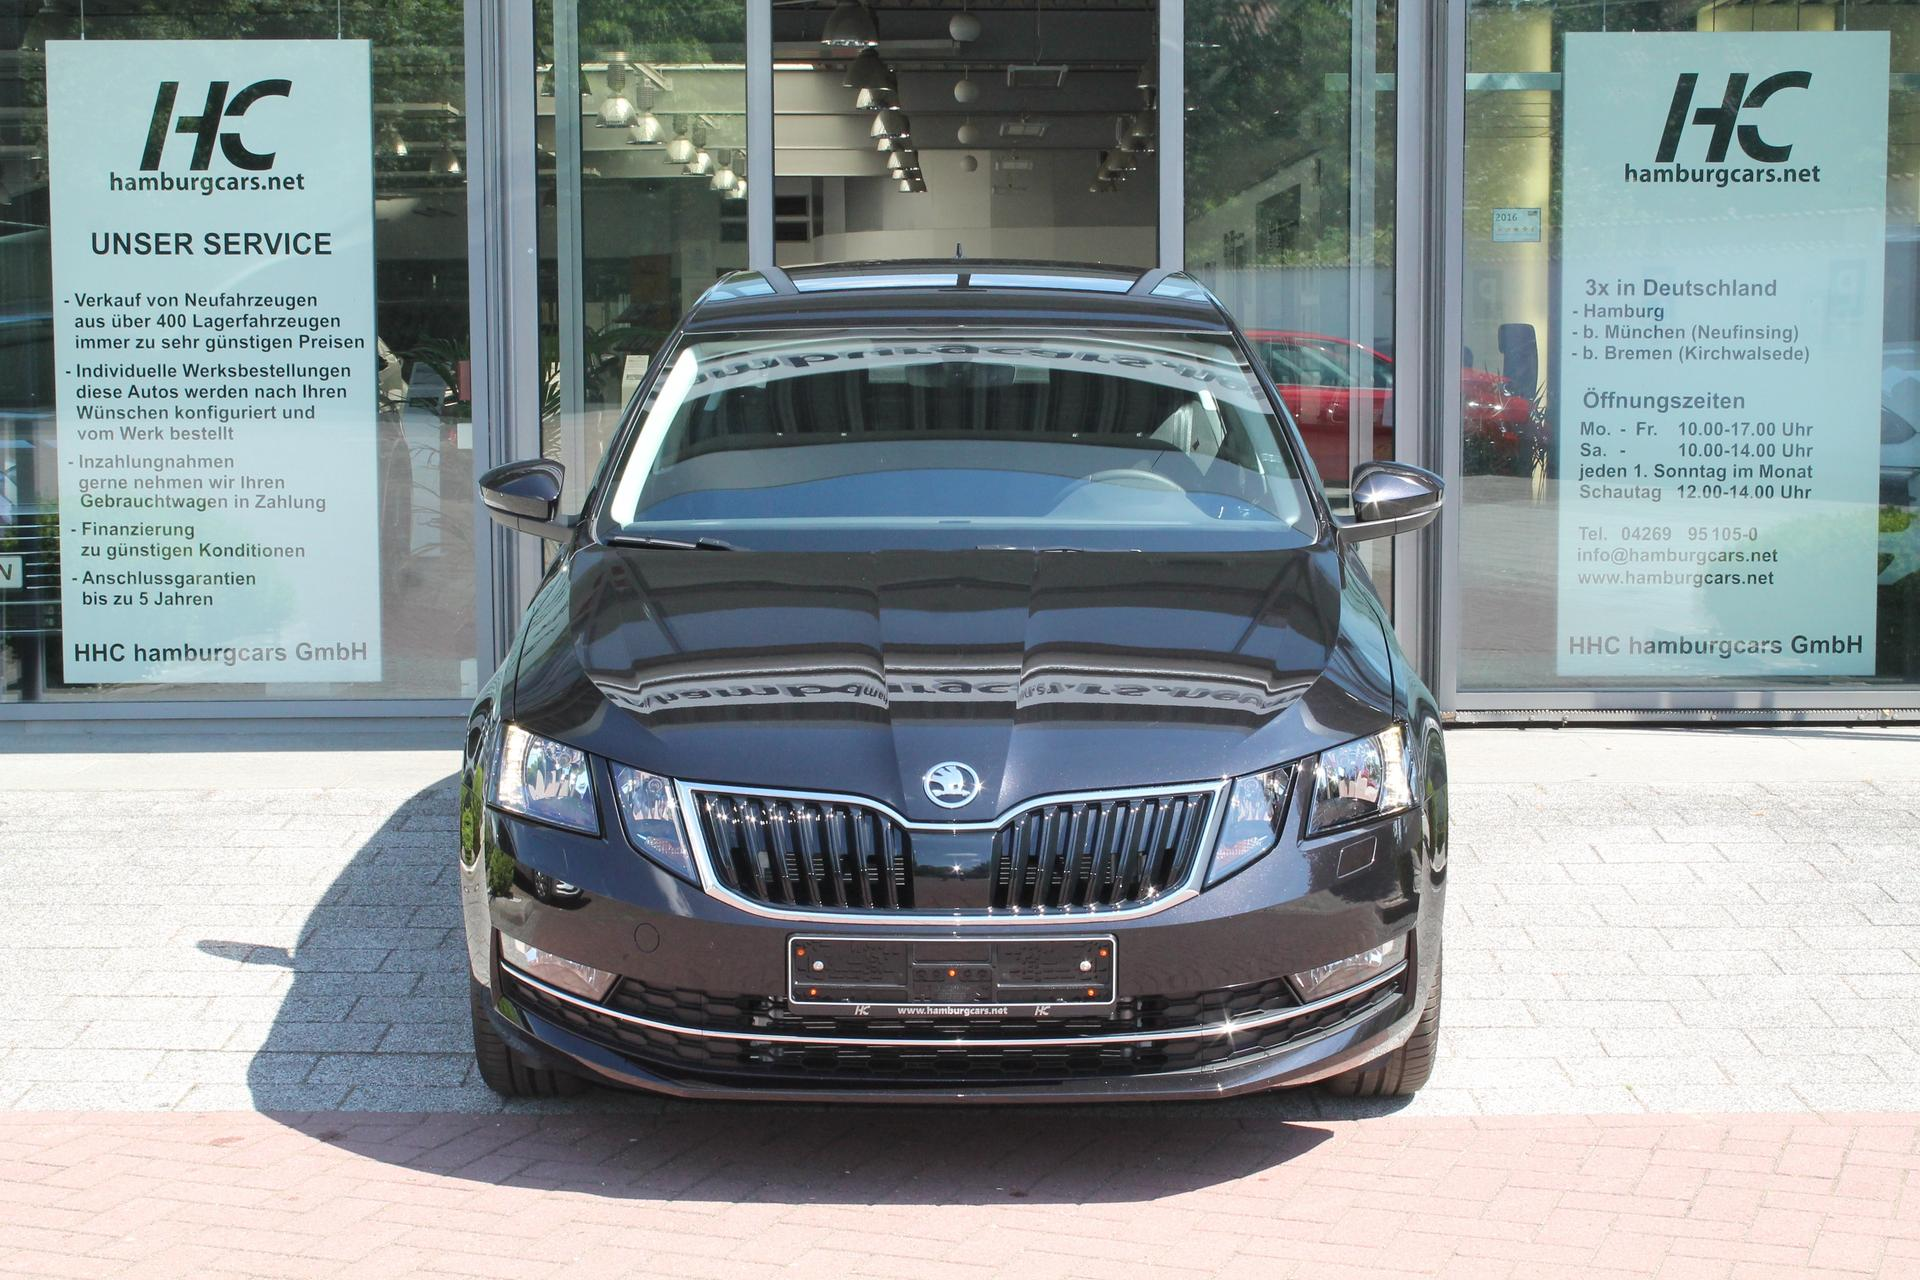 skoda octavia ambition 1 6 tdi adblue dsg winterpaket. Black Bedroom Furniture Sets. Home Design Ideas